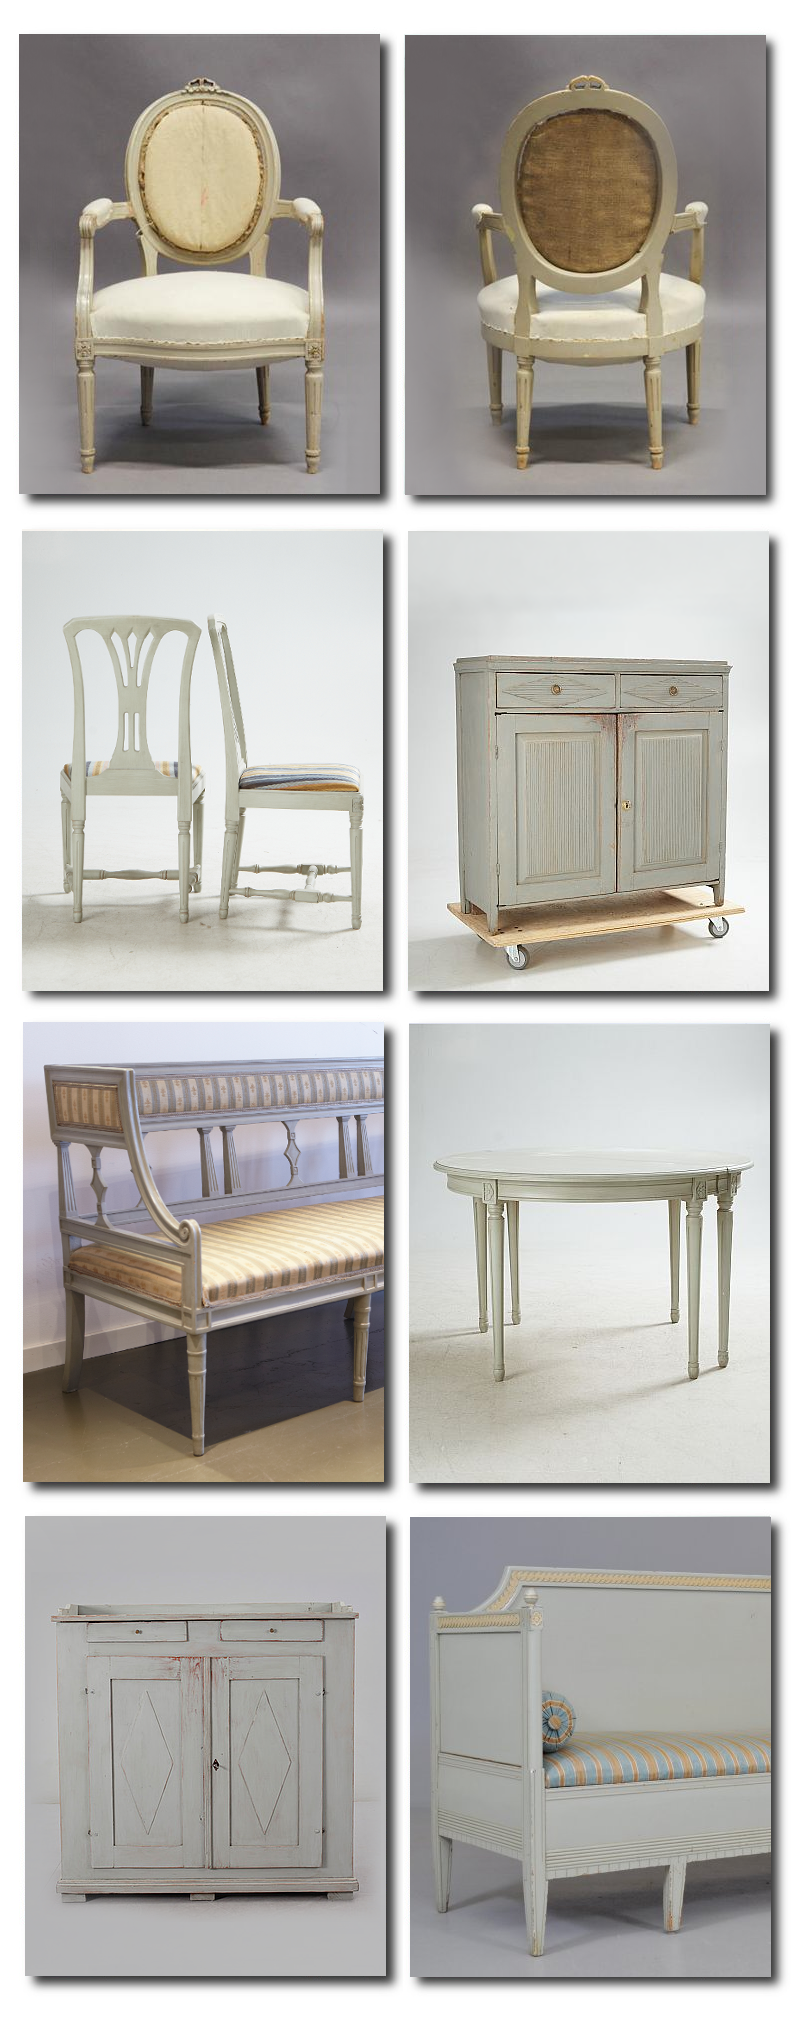 Gustavian Furniture In Gray